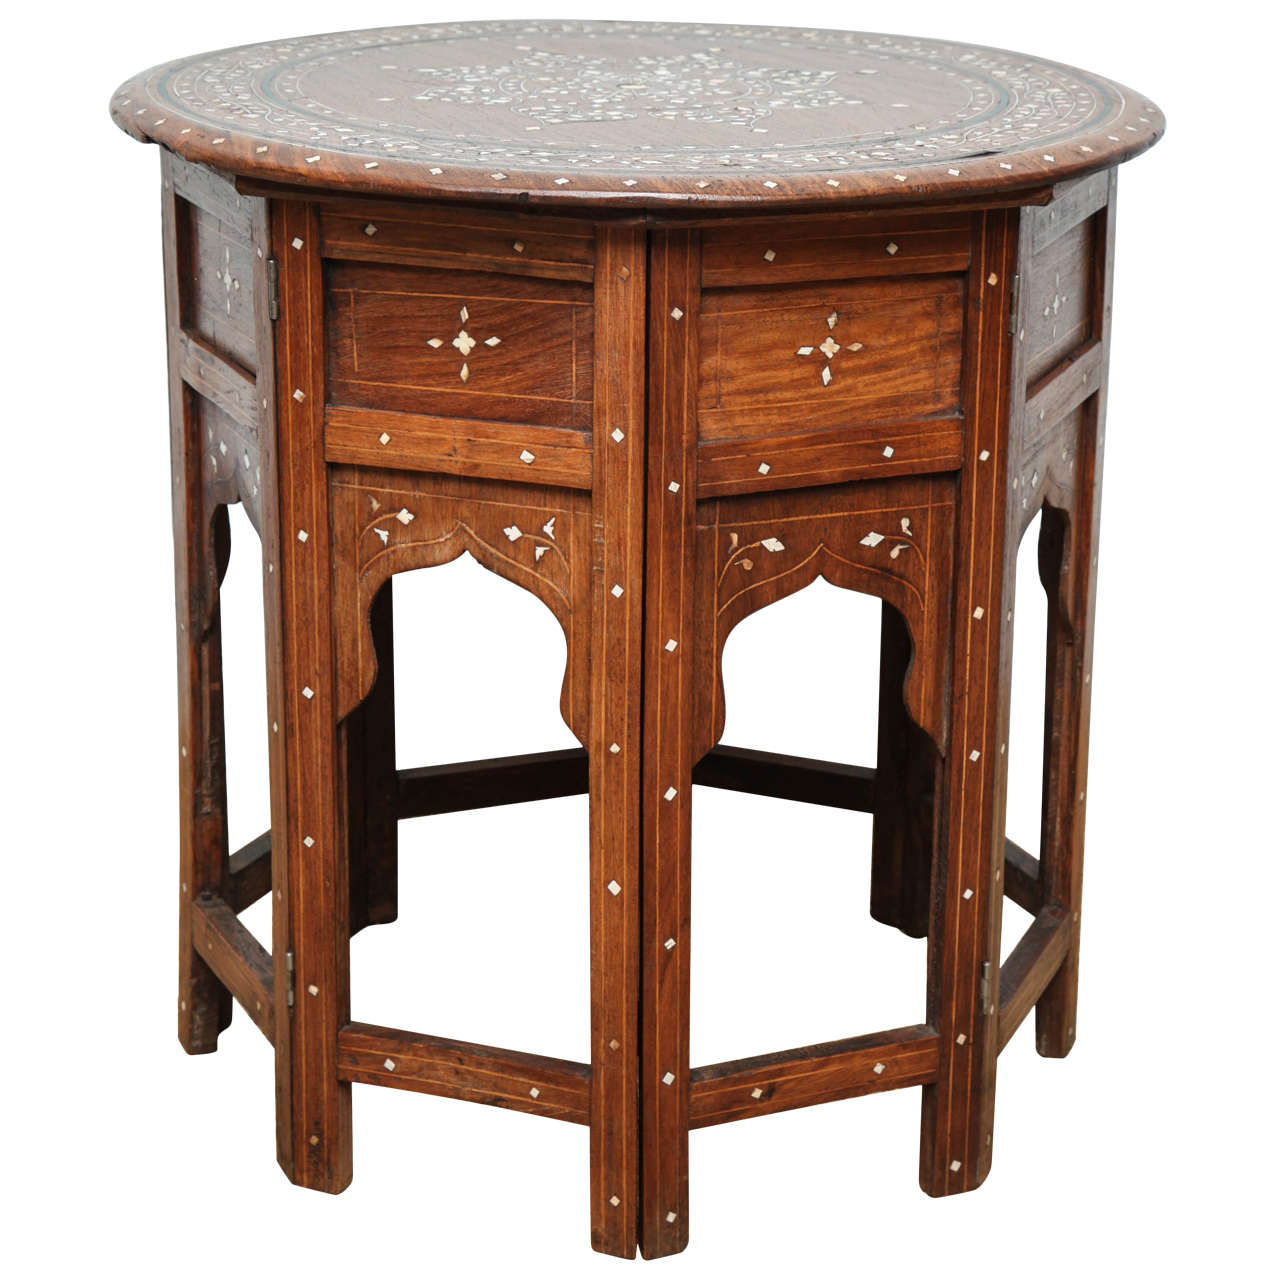 Indian Bone Inlaid Circular Folding Table 1